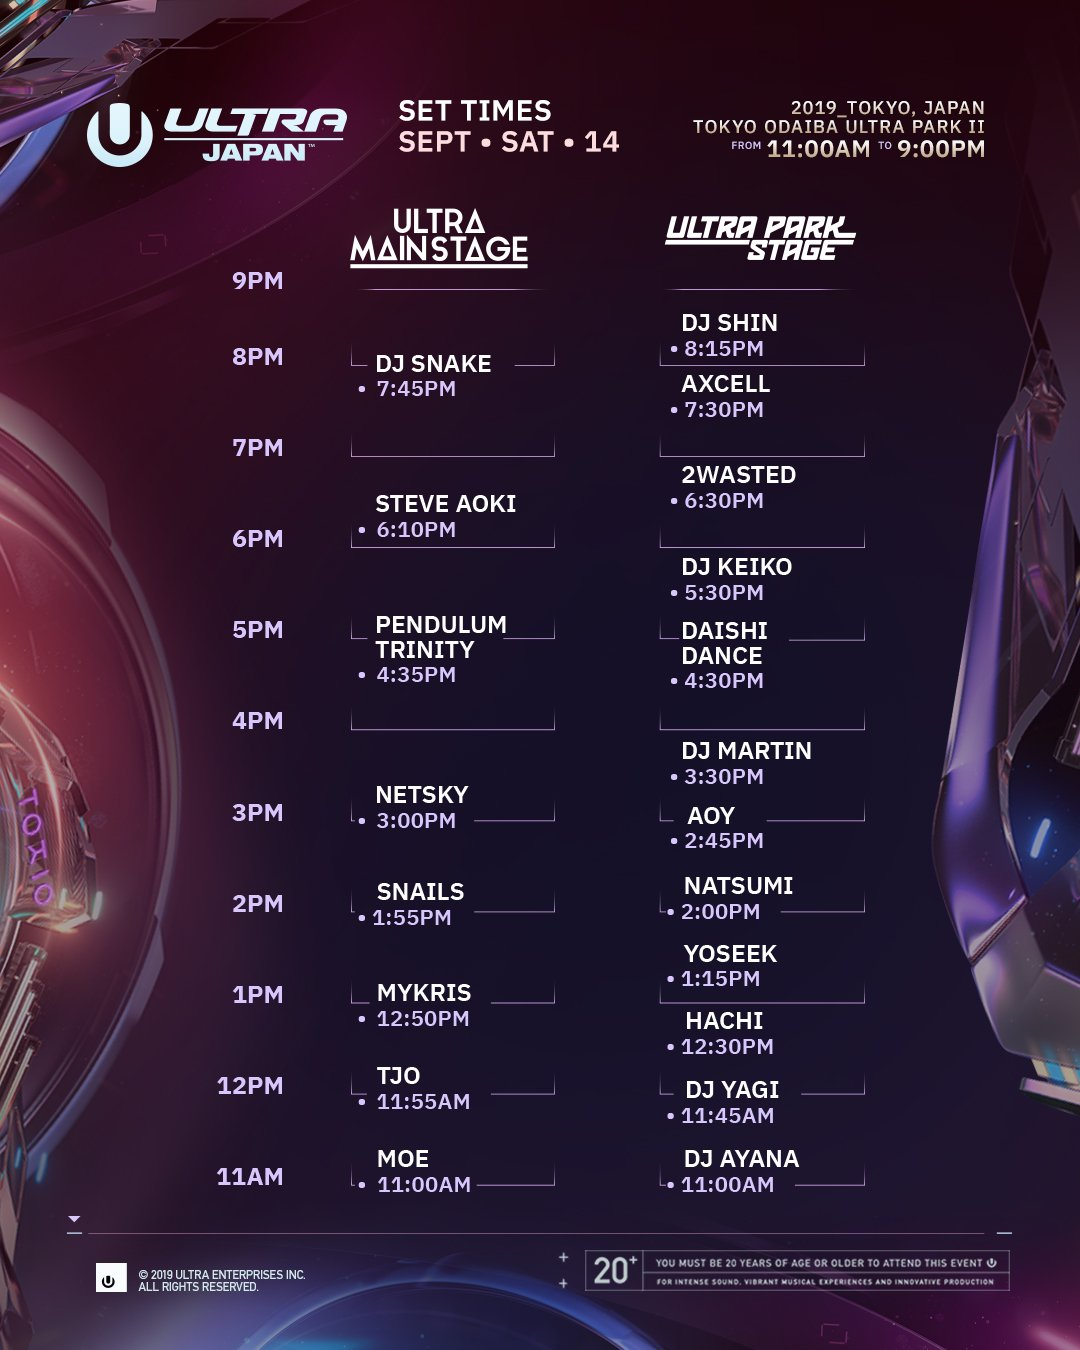 Ultra Japan schedule